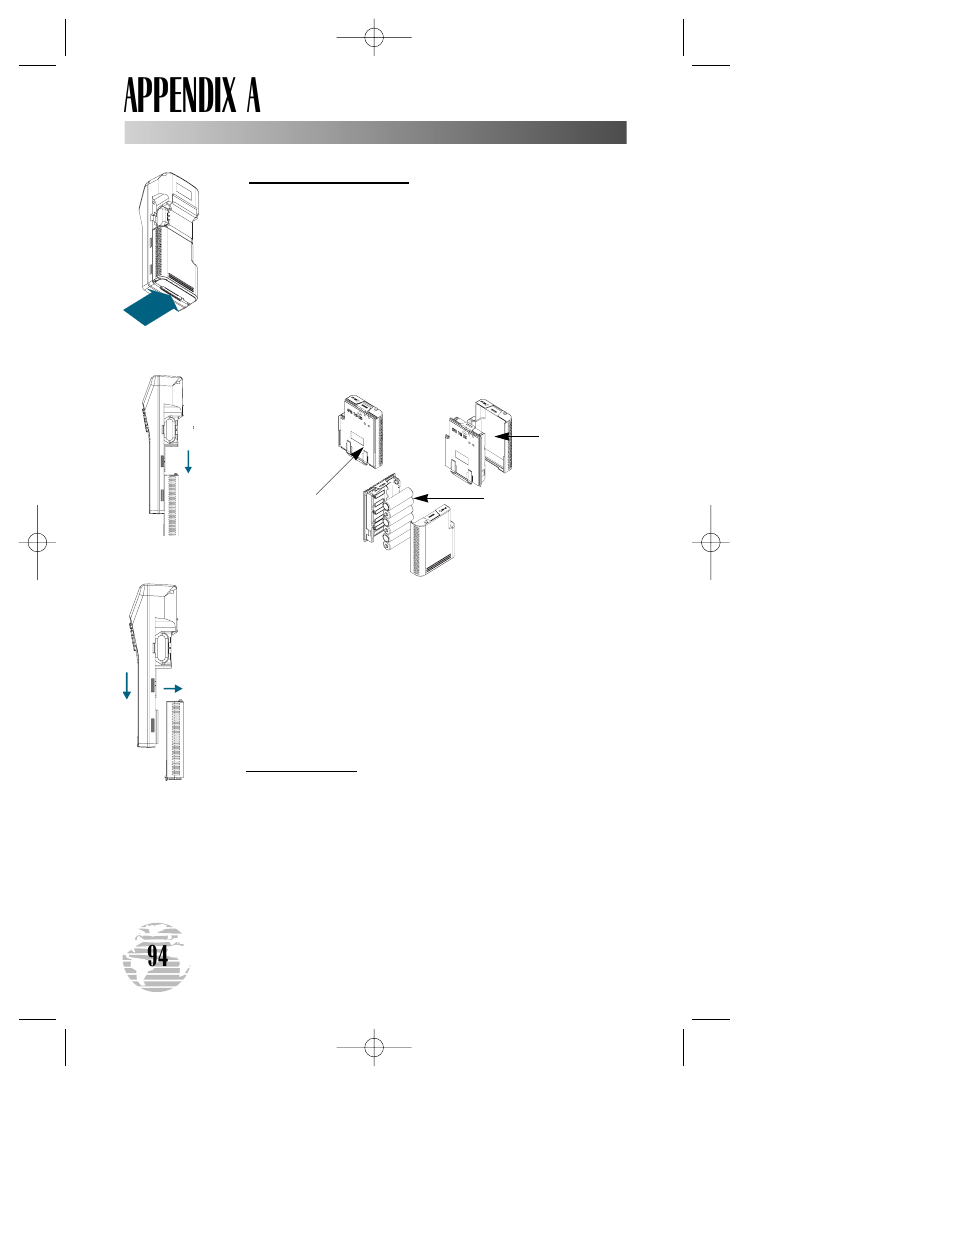 Appendix a | Garmin GPSMAP 195 User Manual | Page 96 / 114